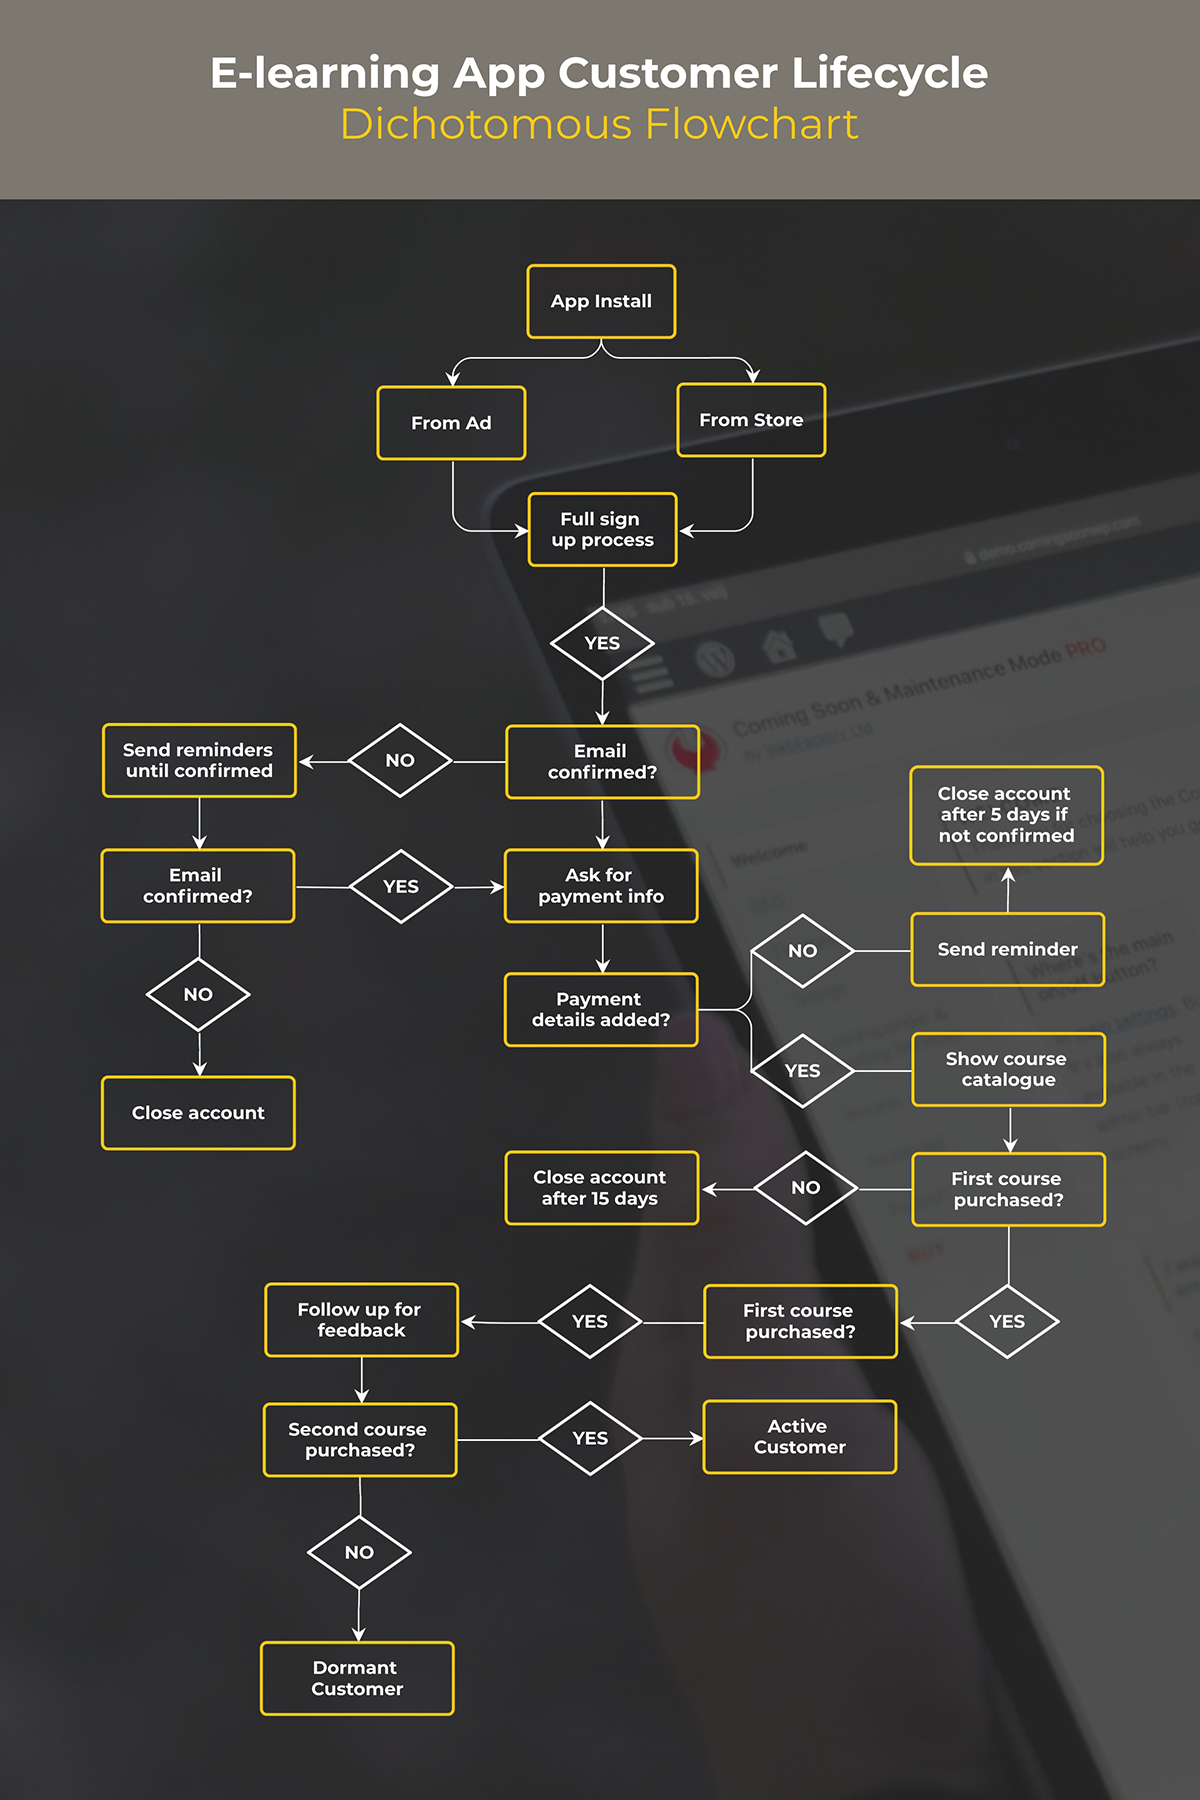 An e-learning app customer lifecycle flowchart template available in Visme.